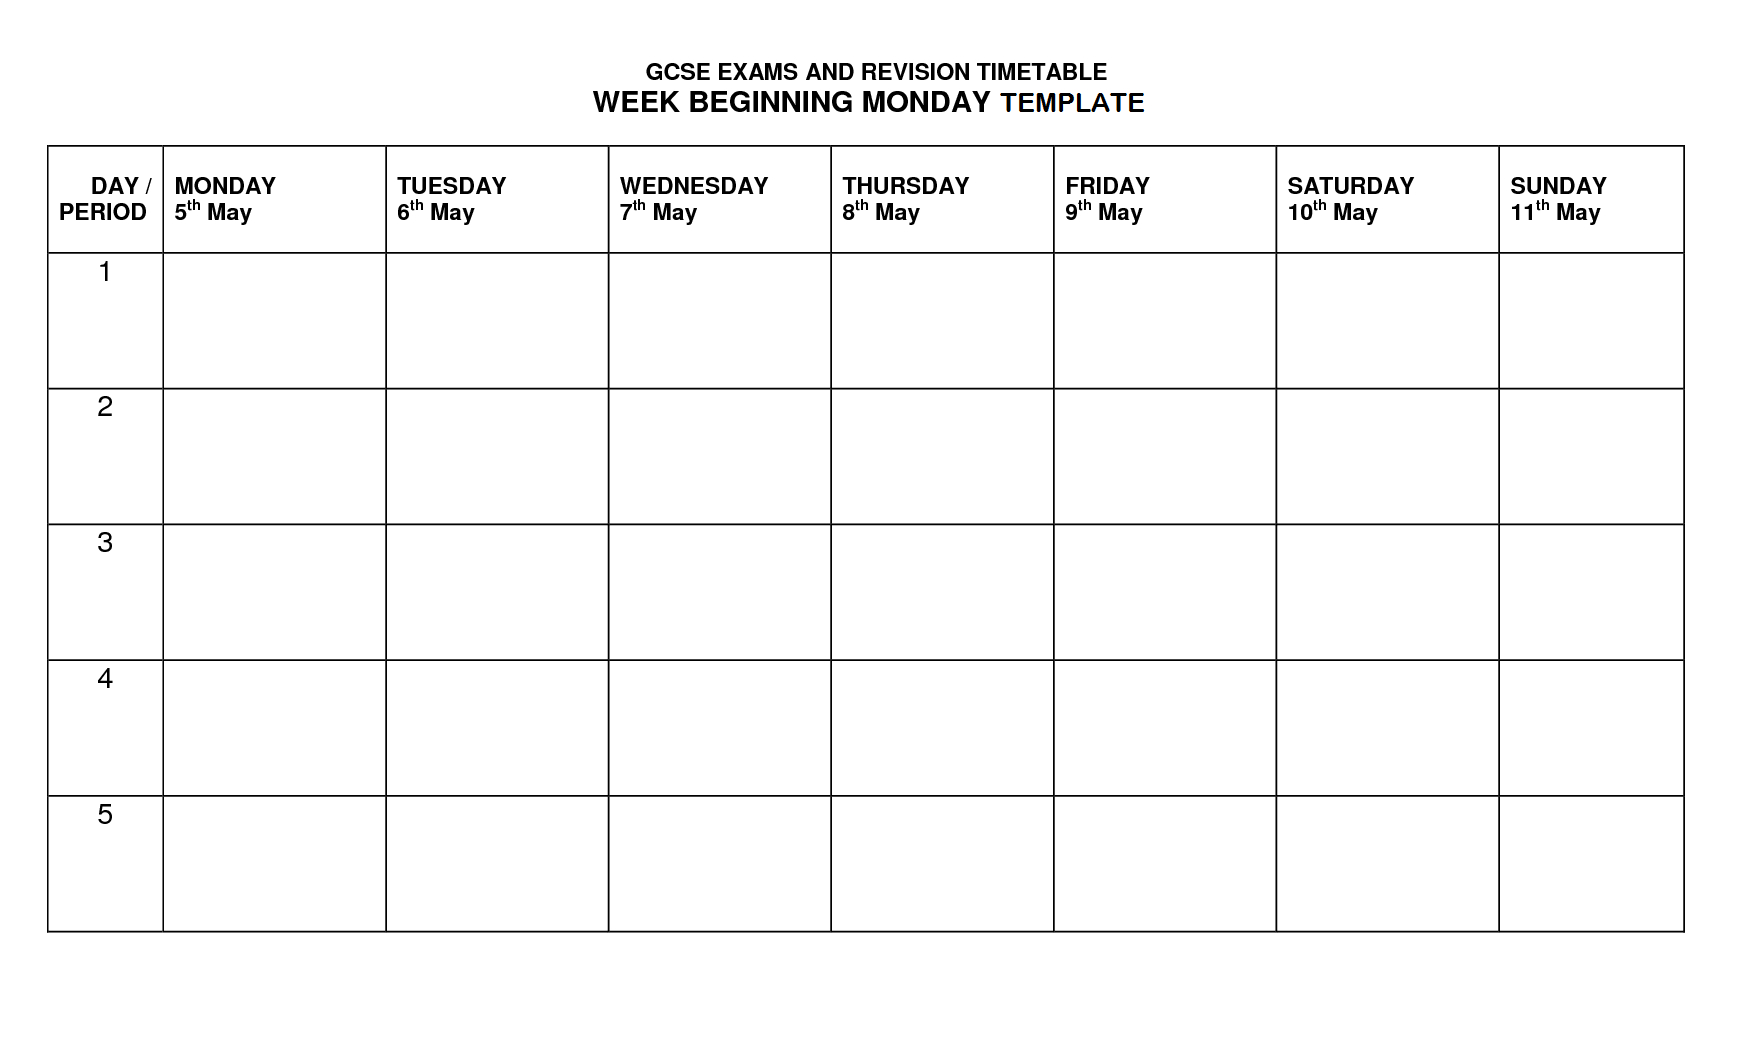 Timetable Template | Timetable Template, Revision Timetable